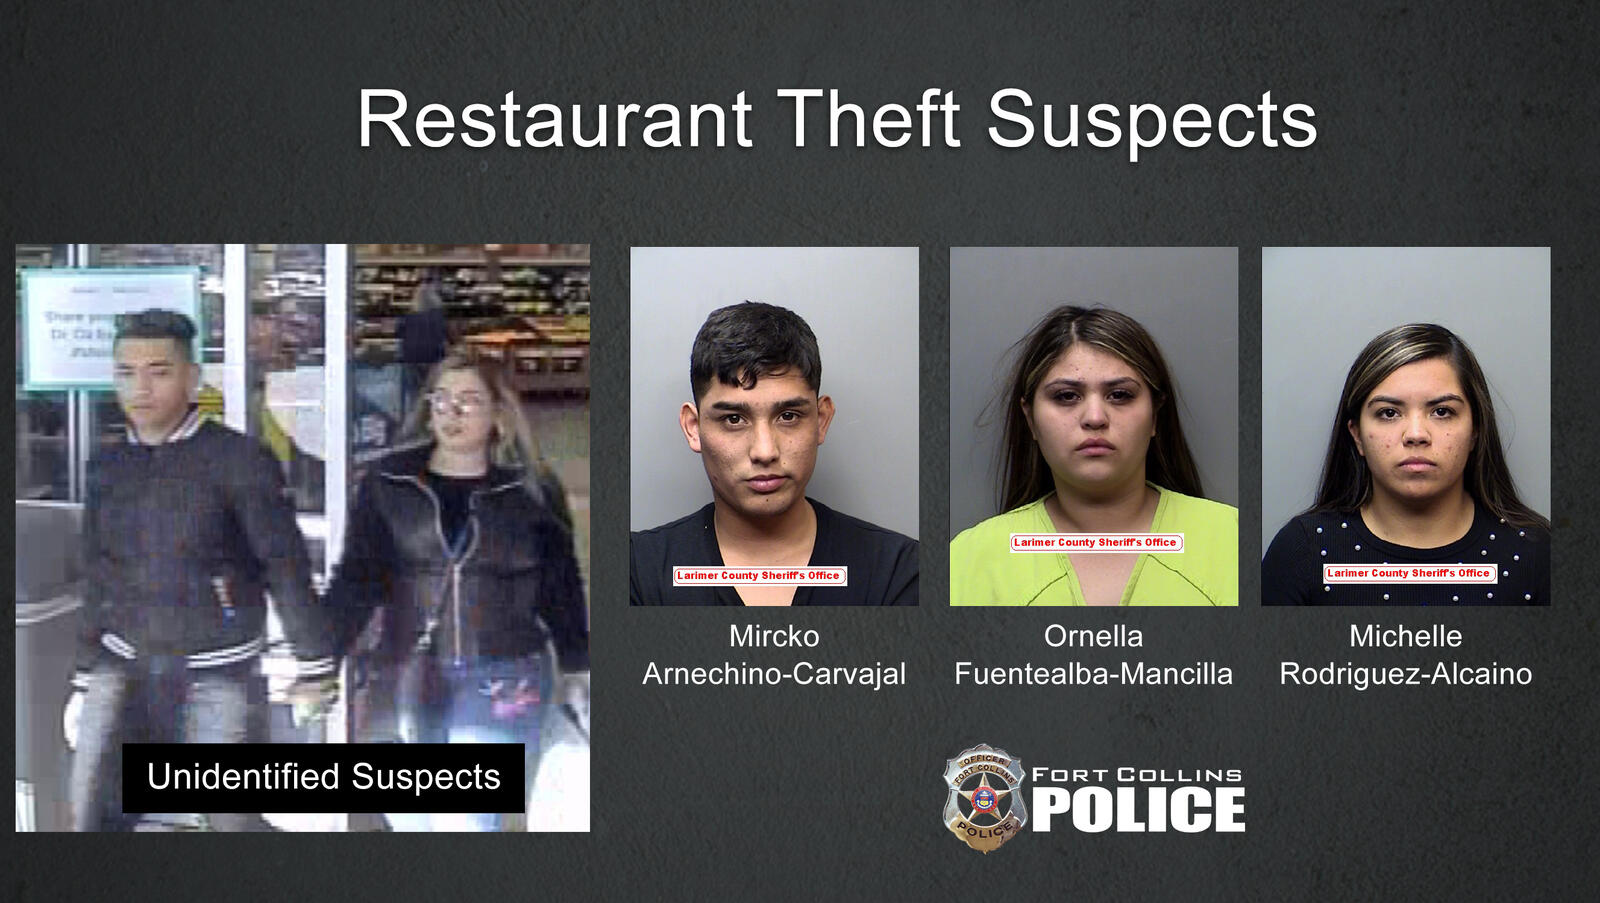 Suspects arrested for natural area break-ins, credit card thefts